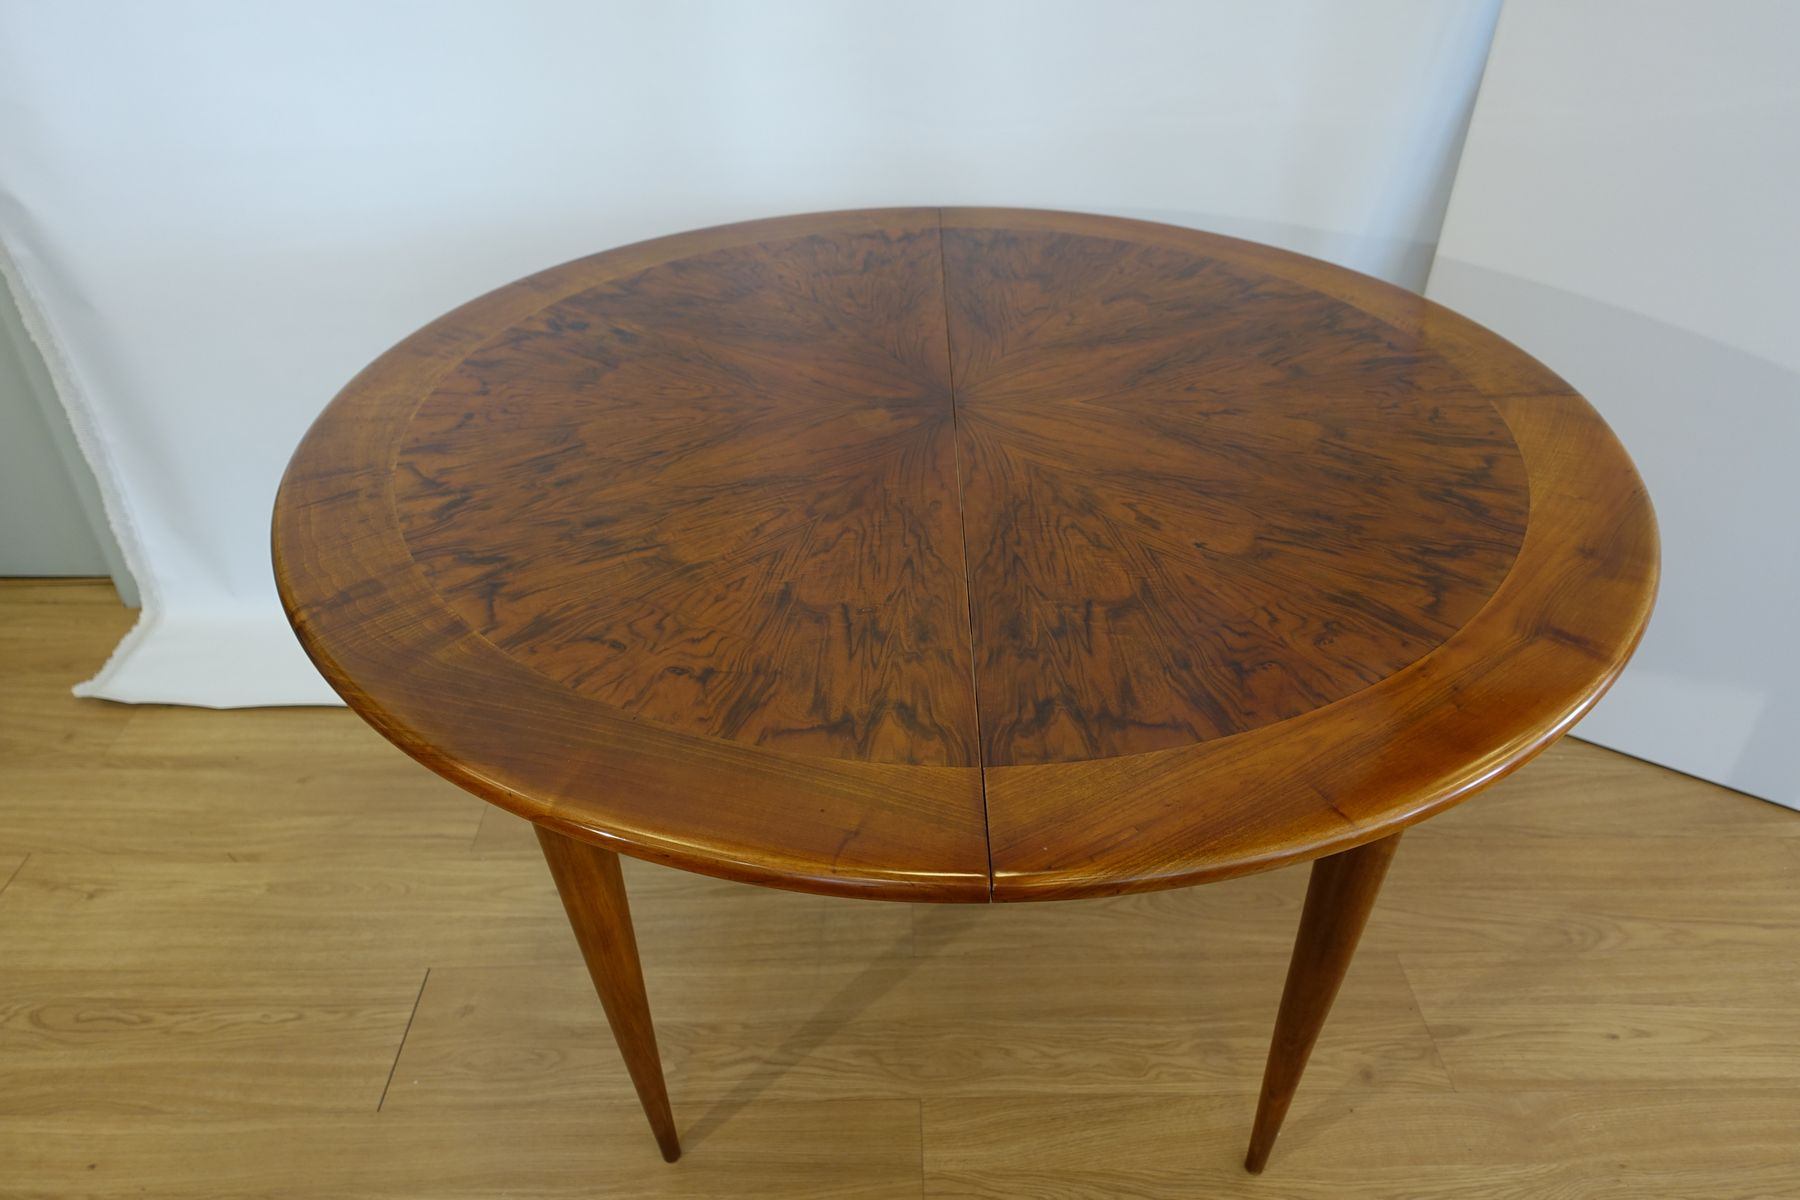 Round Walnut Dining Table by José Cruz de Carvalho for Altamira